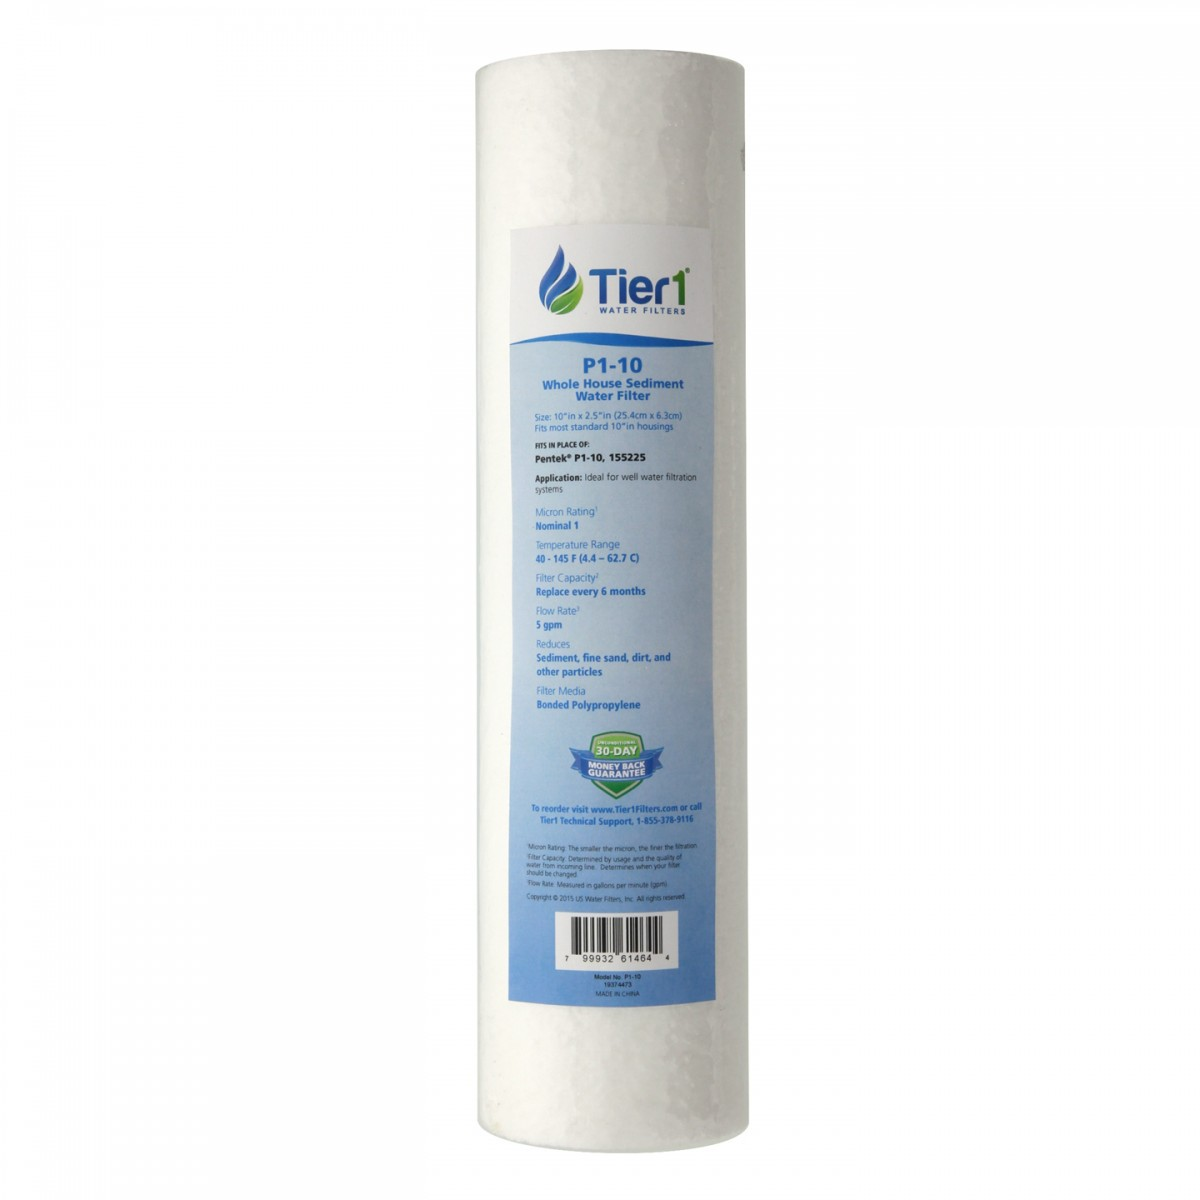 Whole house sediment water filter Carbon Waterfiltersnet P1 Pentek 10 25inch Whole House Sediment Water Filter Replacement